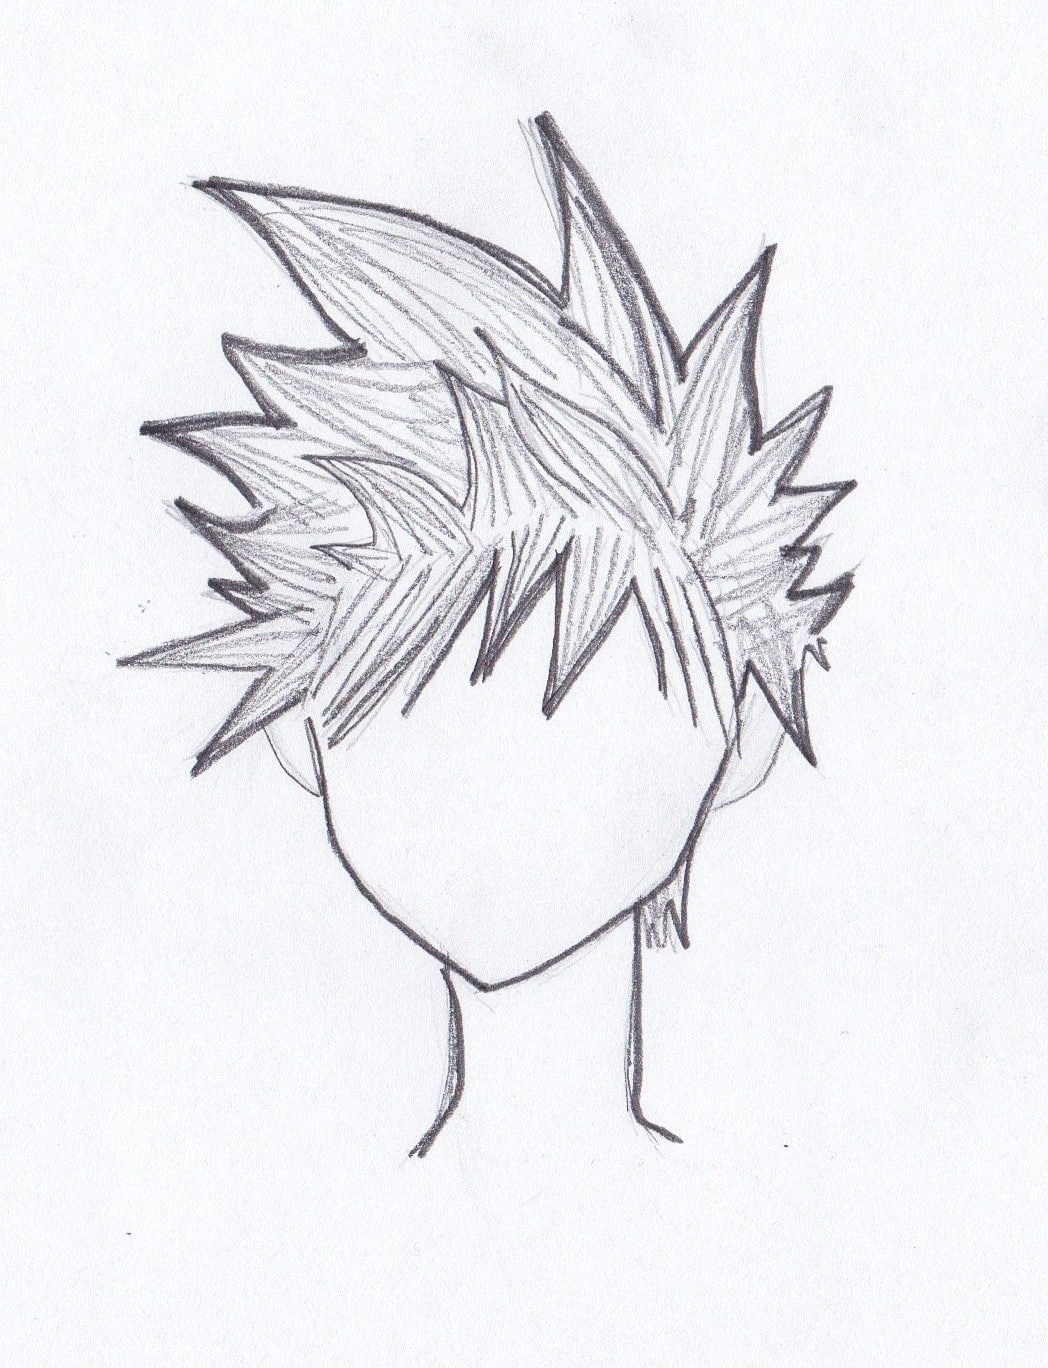 To make things a little easier lets start with a short males hairstyle these can also be fairly complex depending on the route you want to take